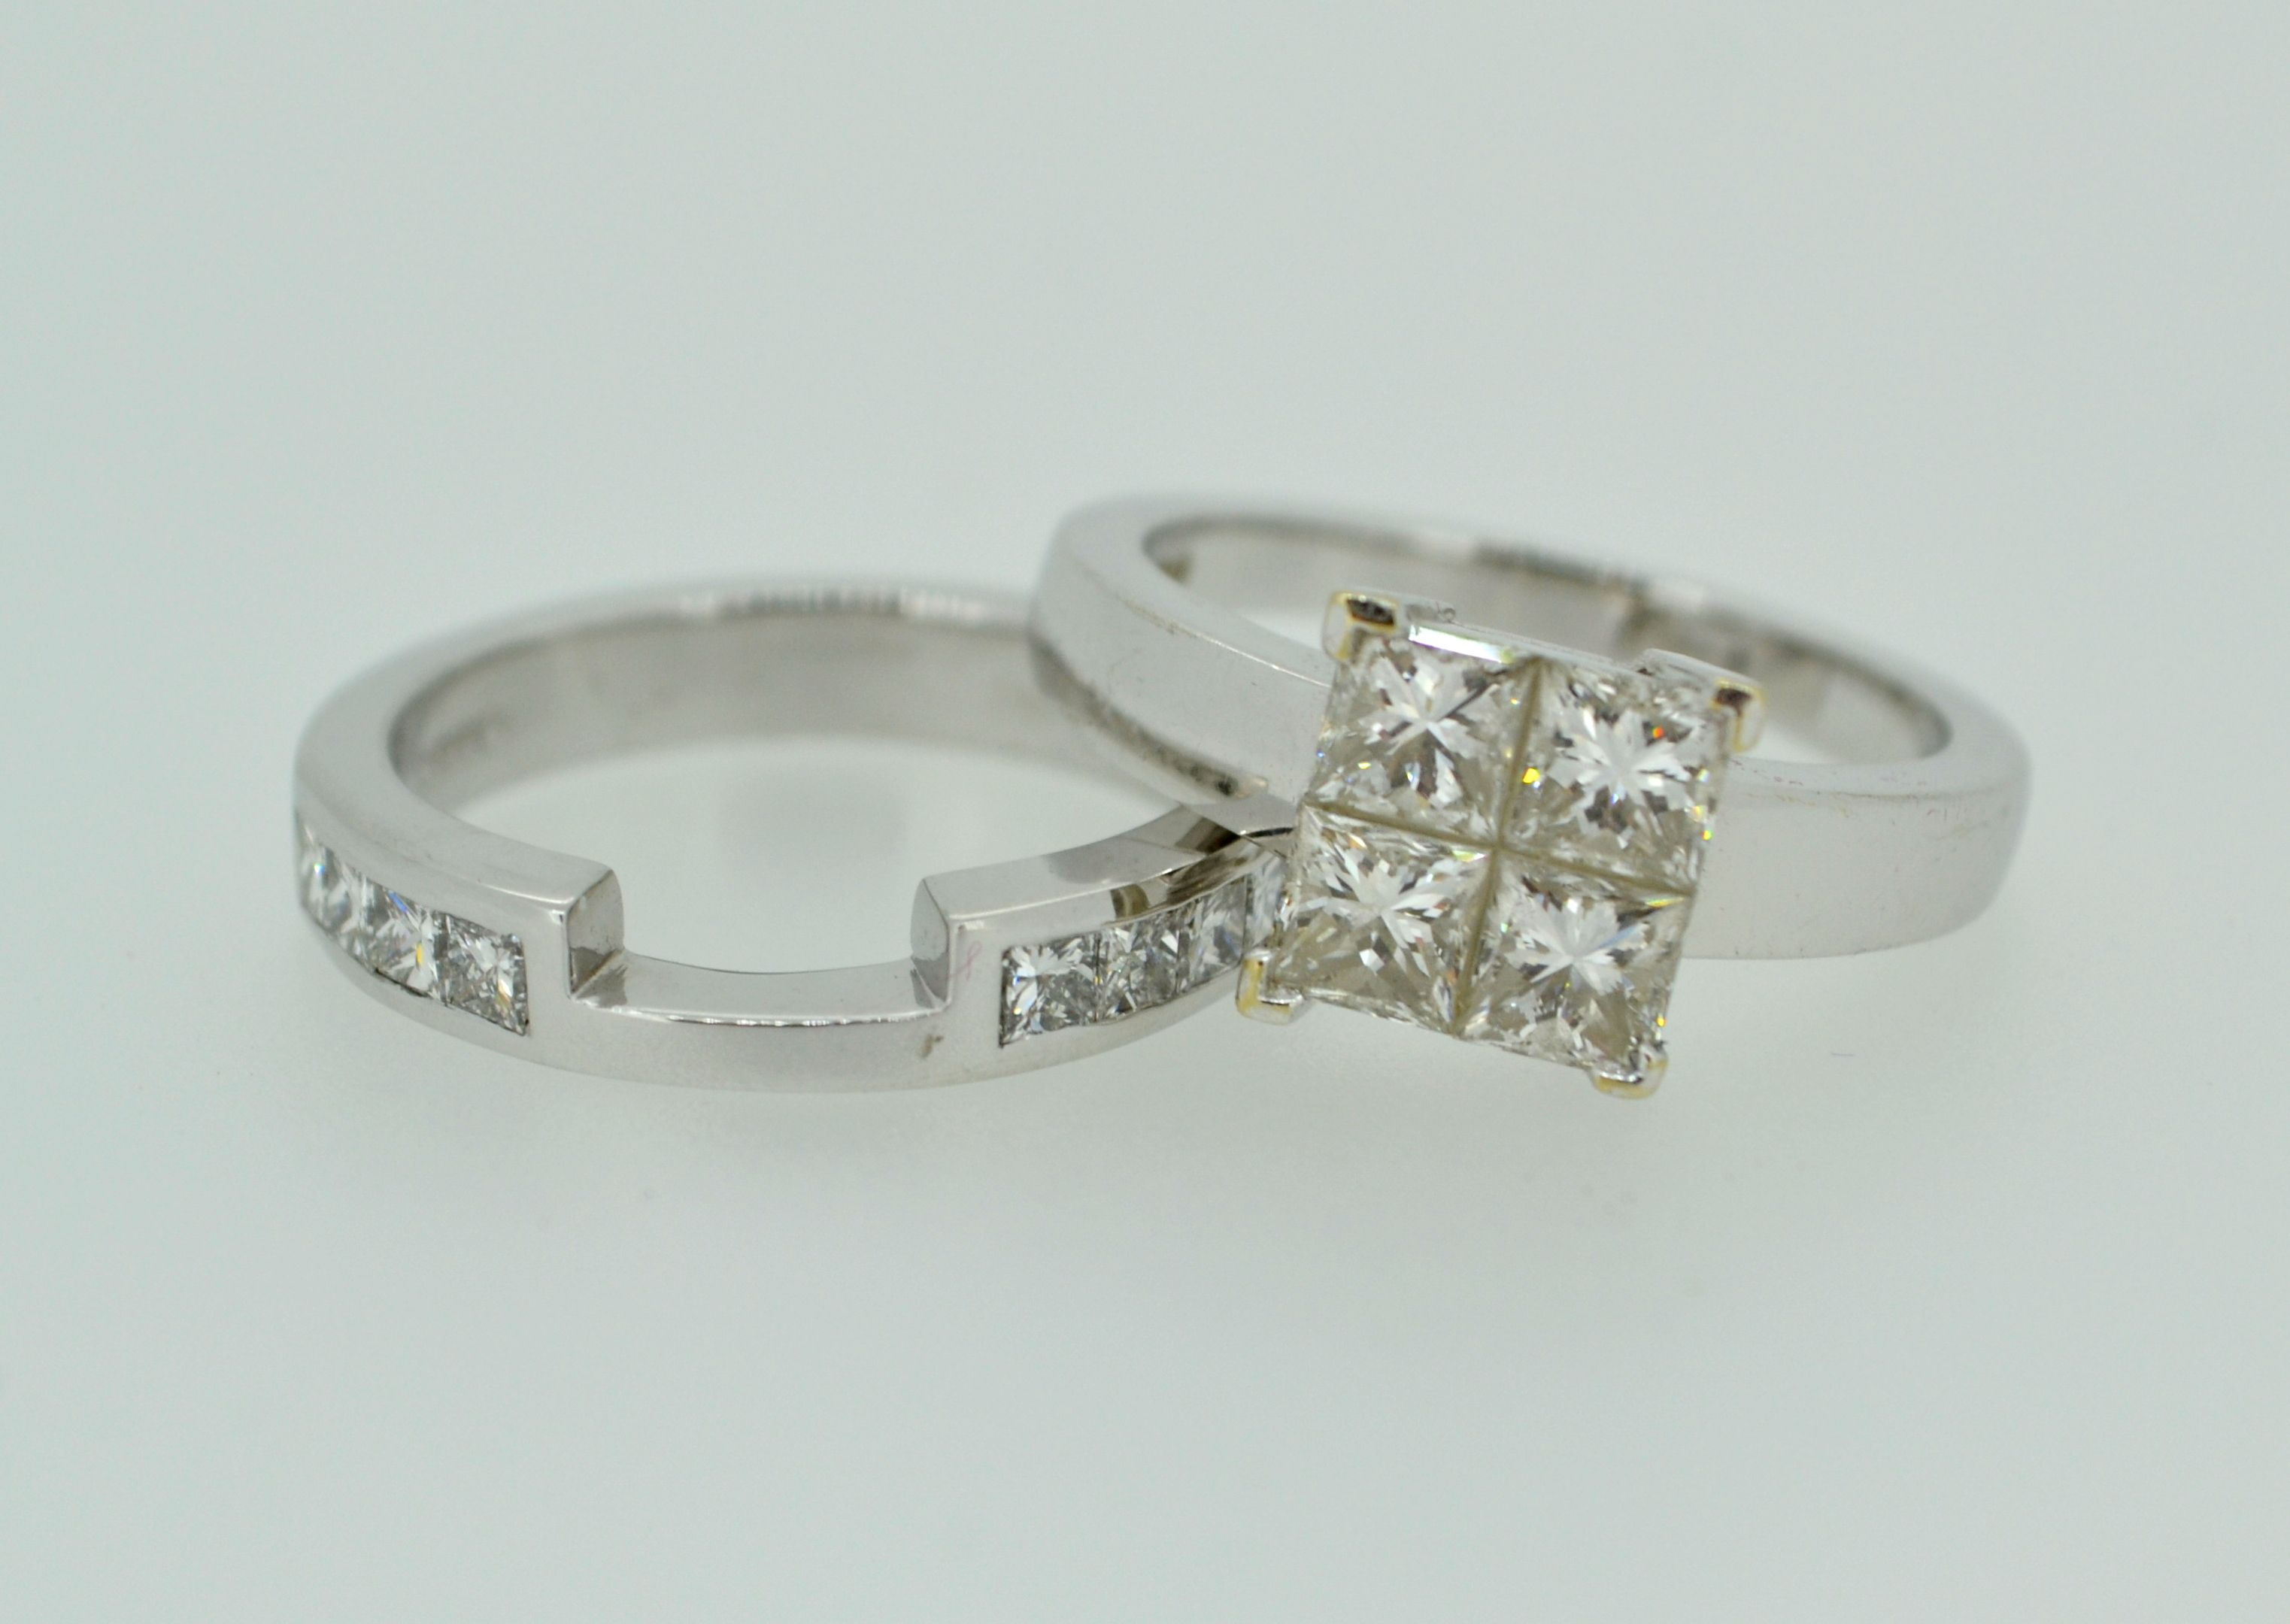 A bespoke wedding ring to match this lovely diamon ring